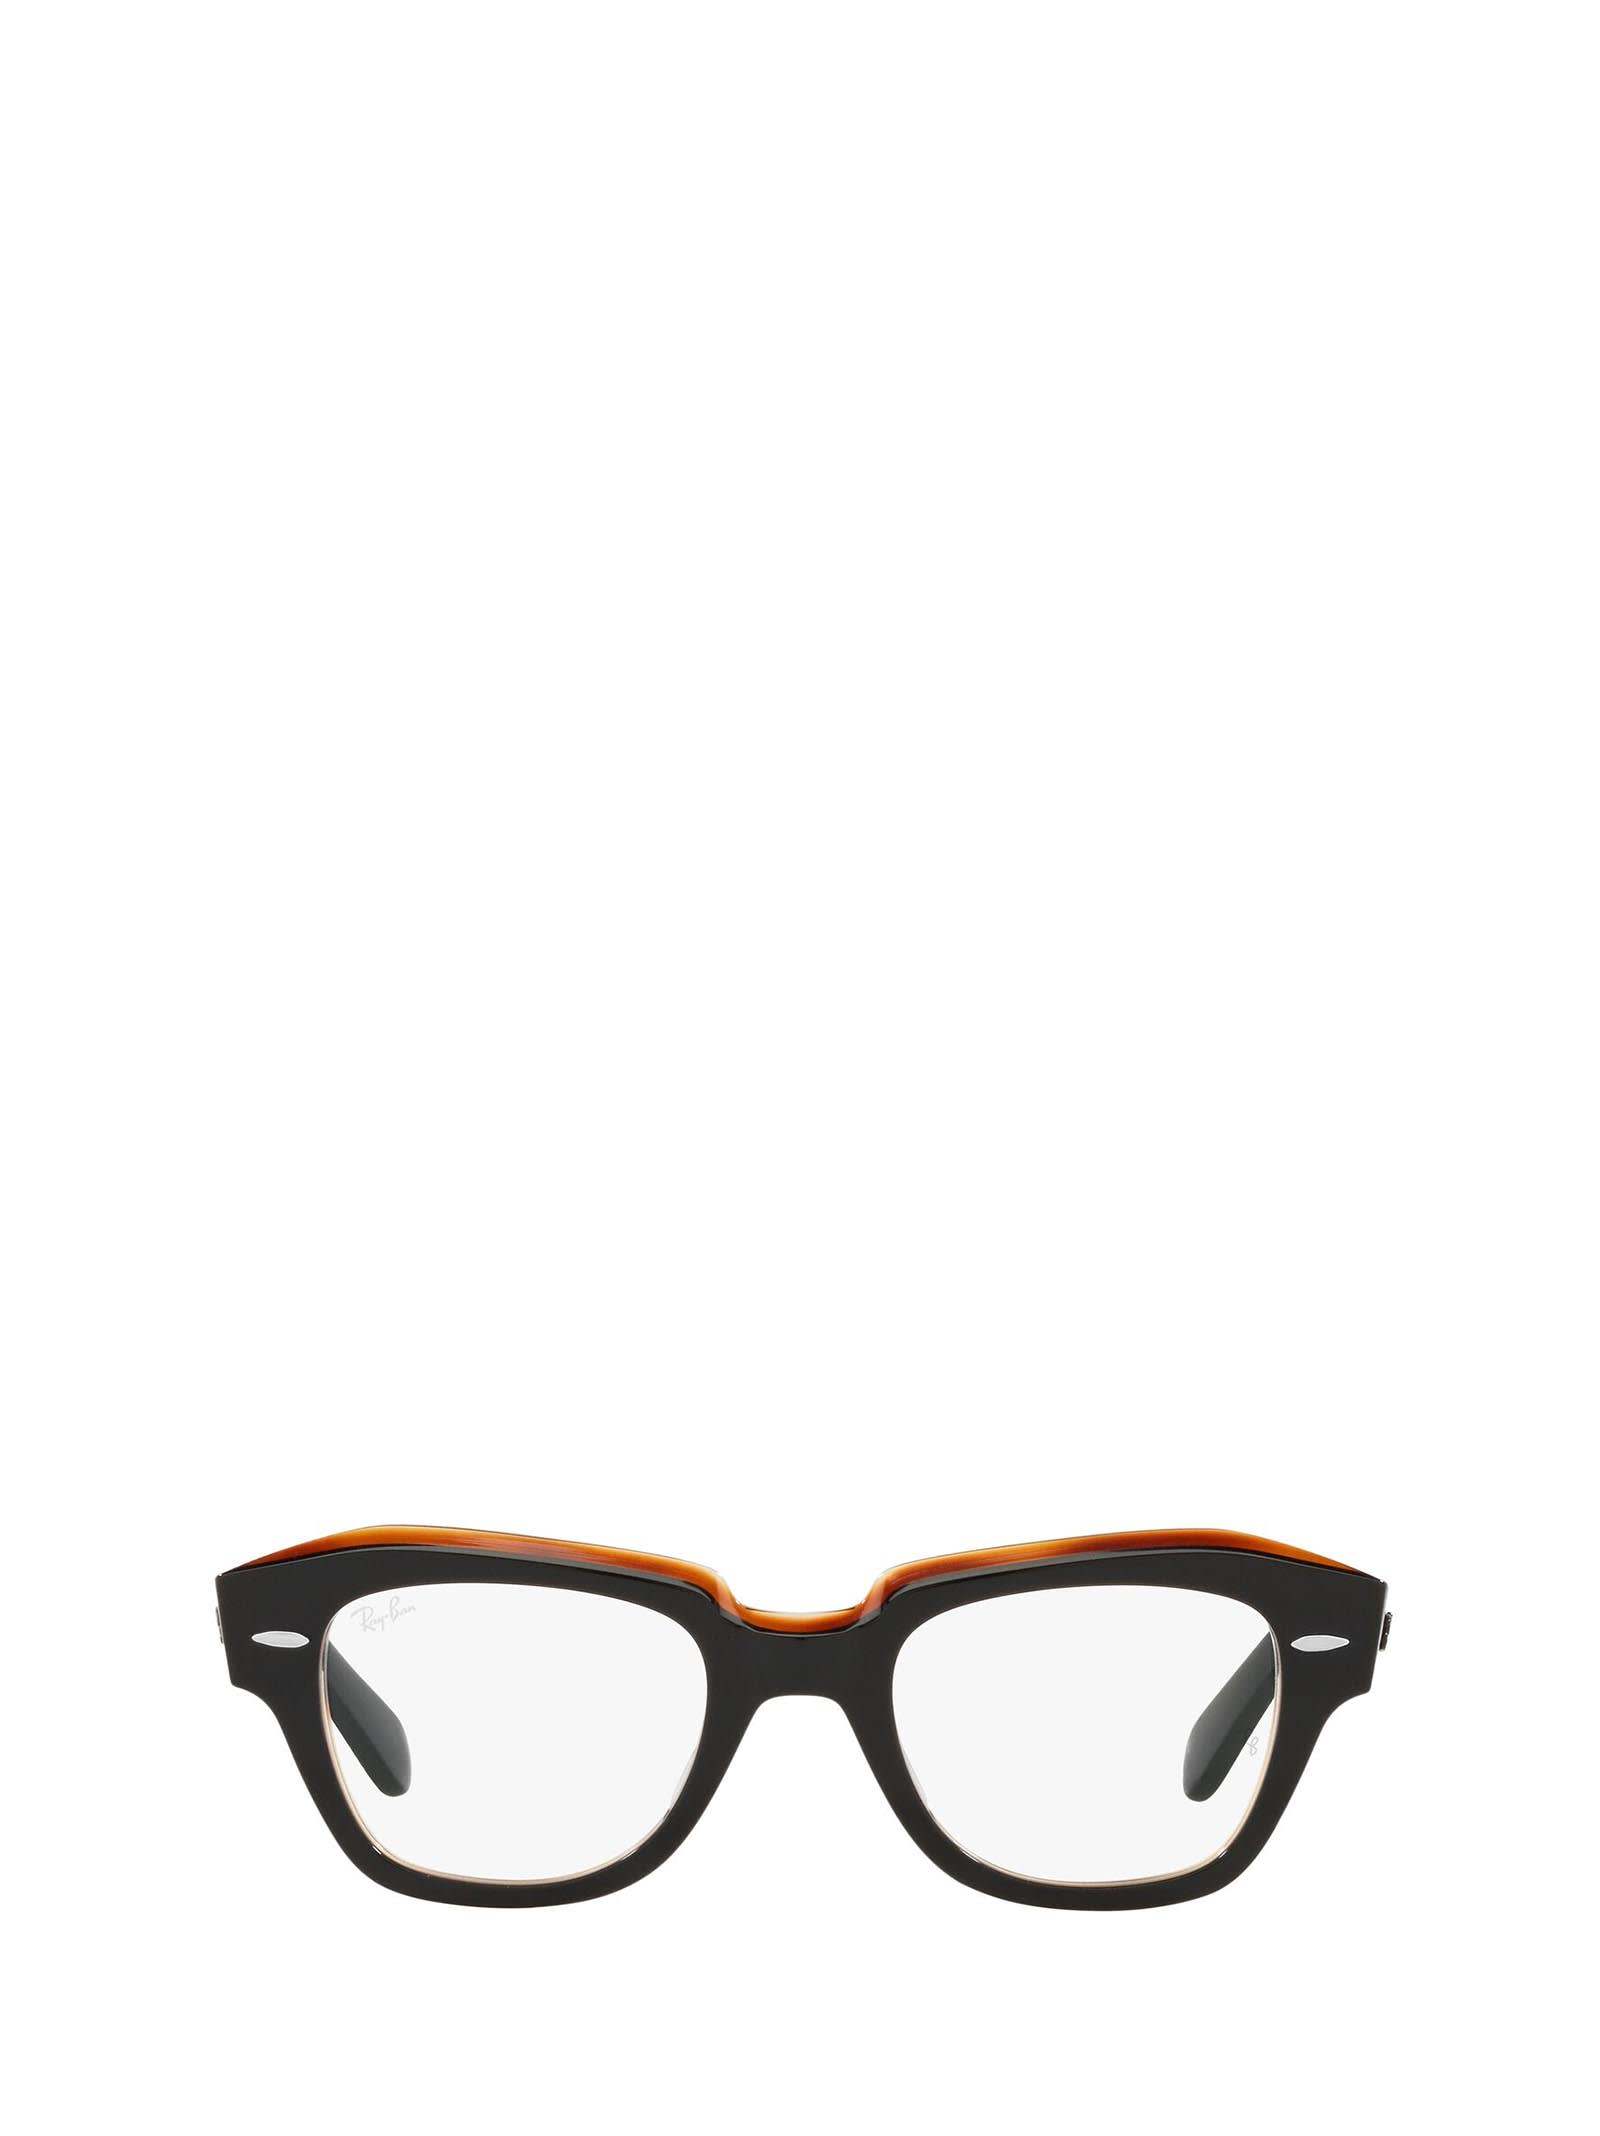 Ray-Ban Ray-ban Rx5486 Black On Transparent Brown Glasses